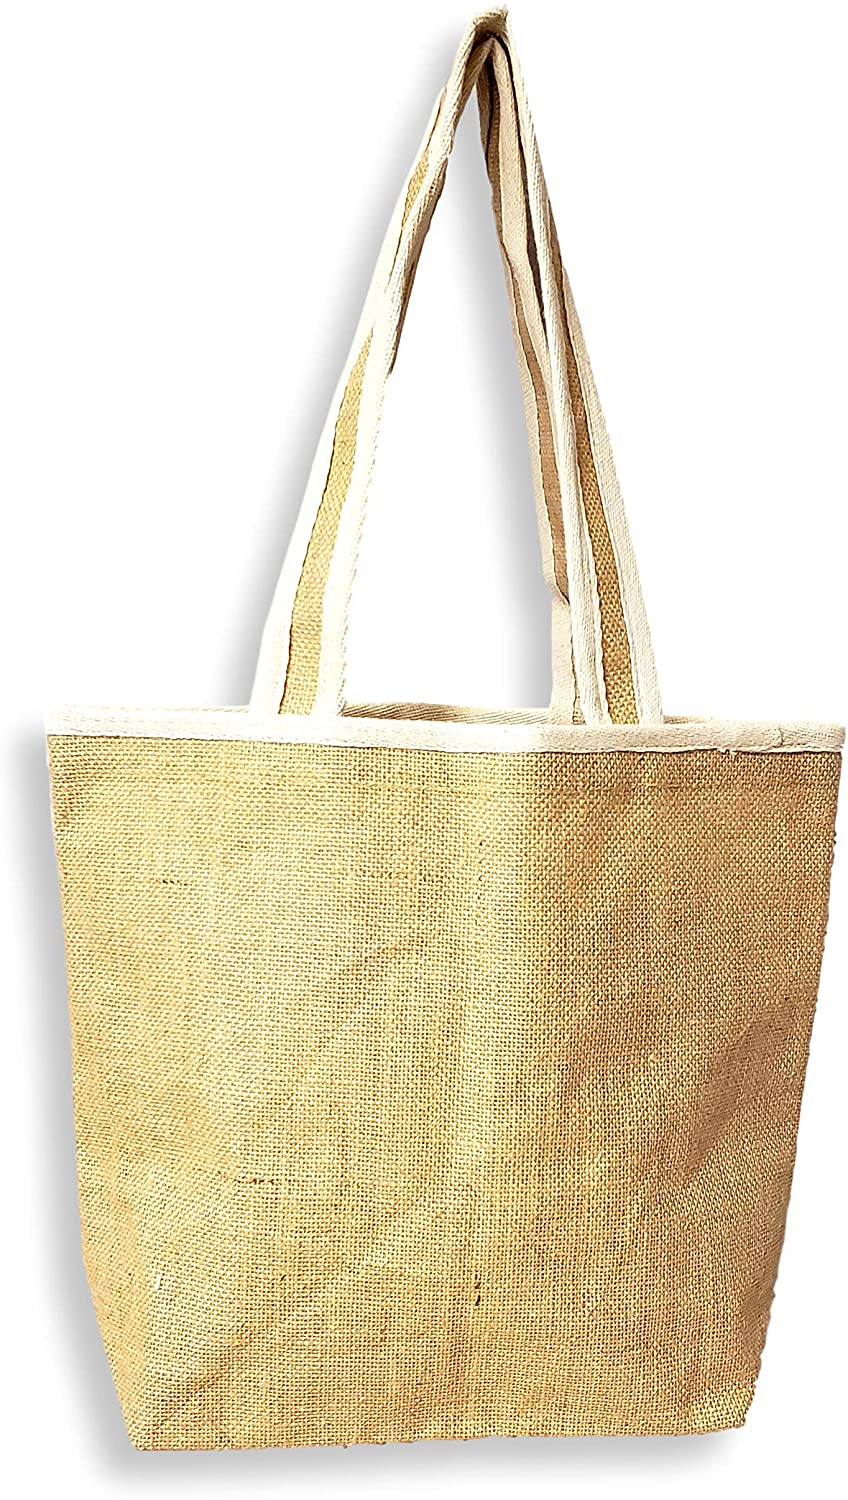 Eco Friendly Small Natural Burlap Tote Bag with Cotton Trim 15 x 12 x 6